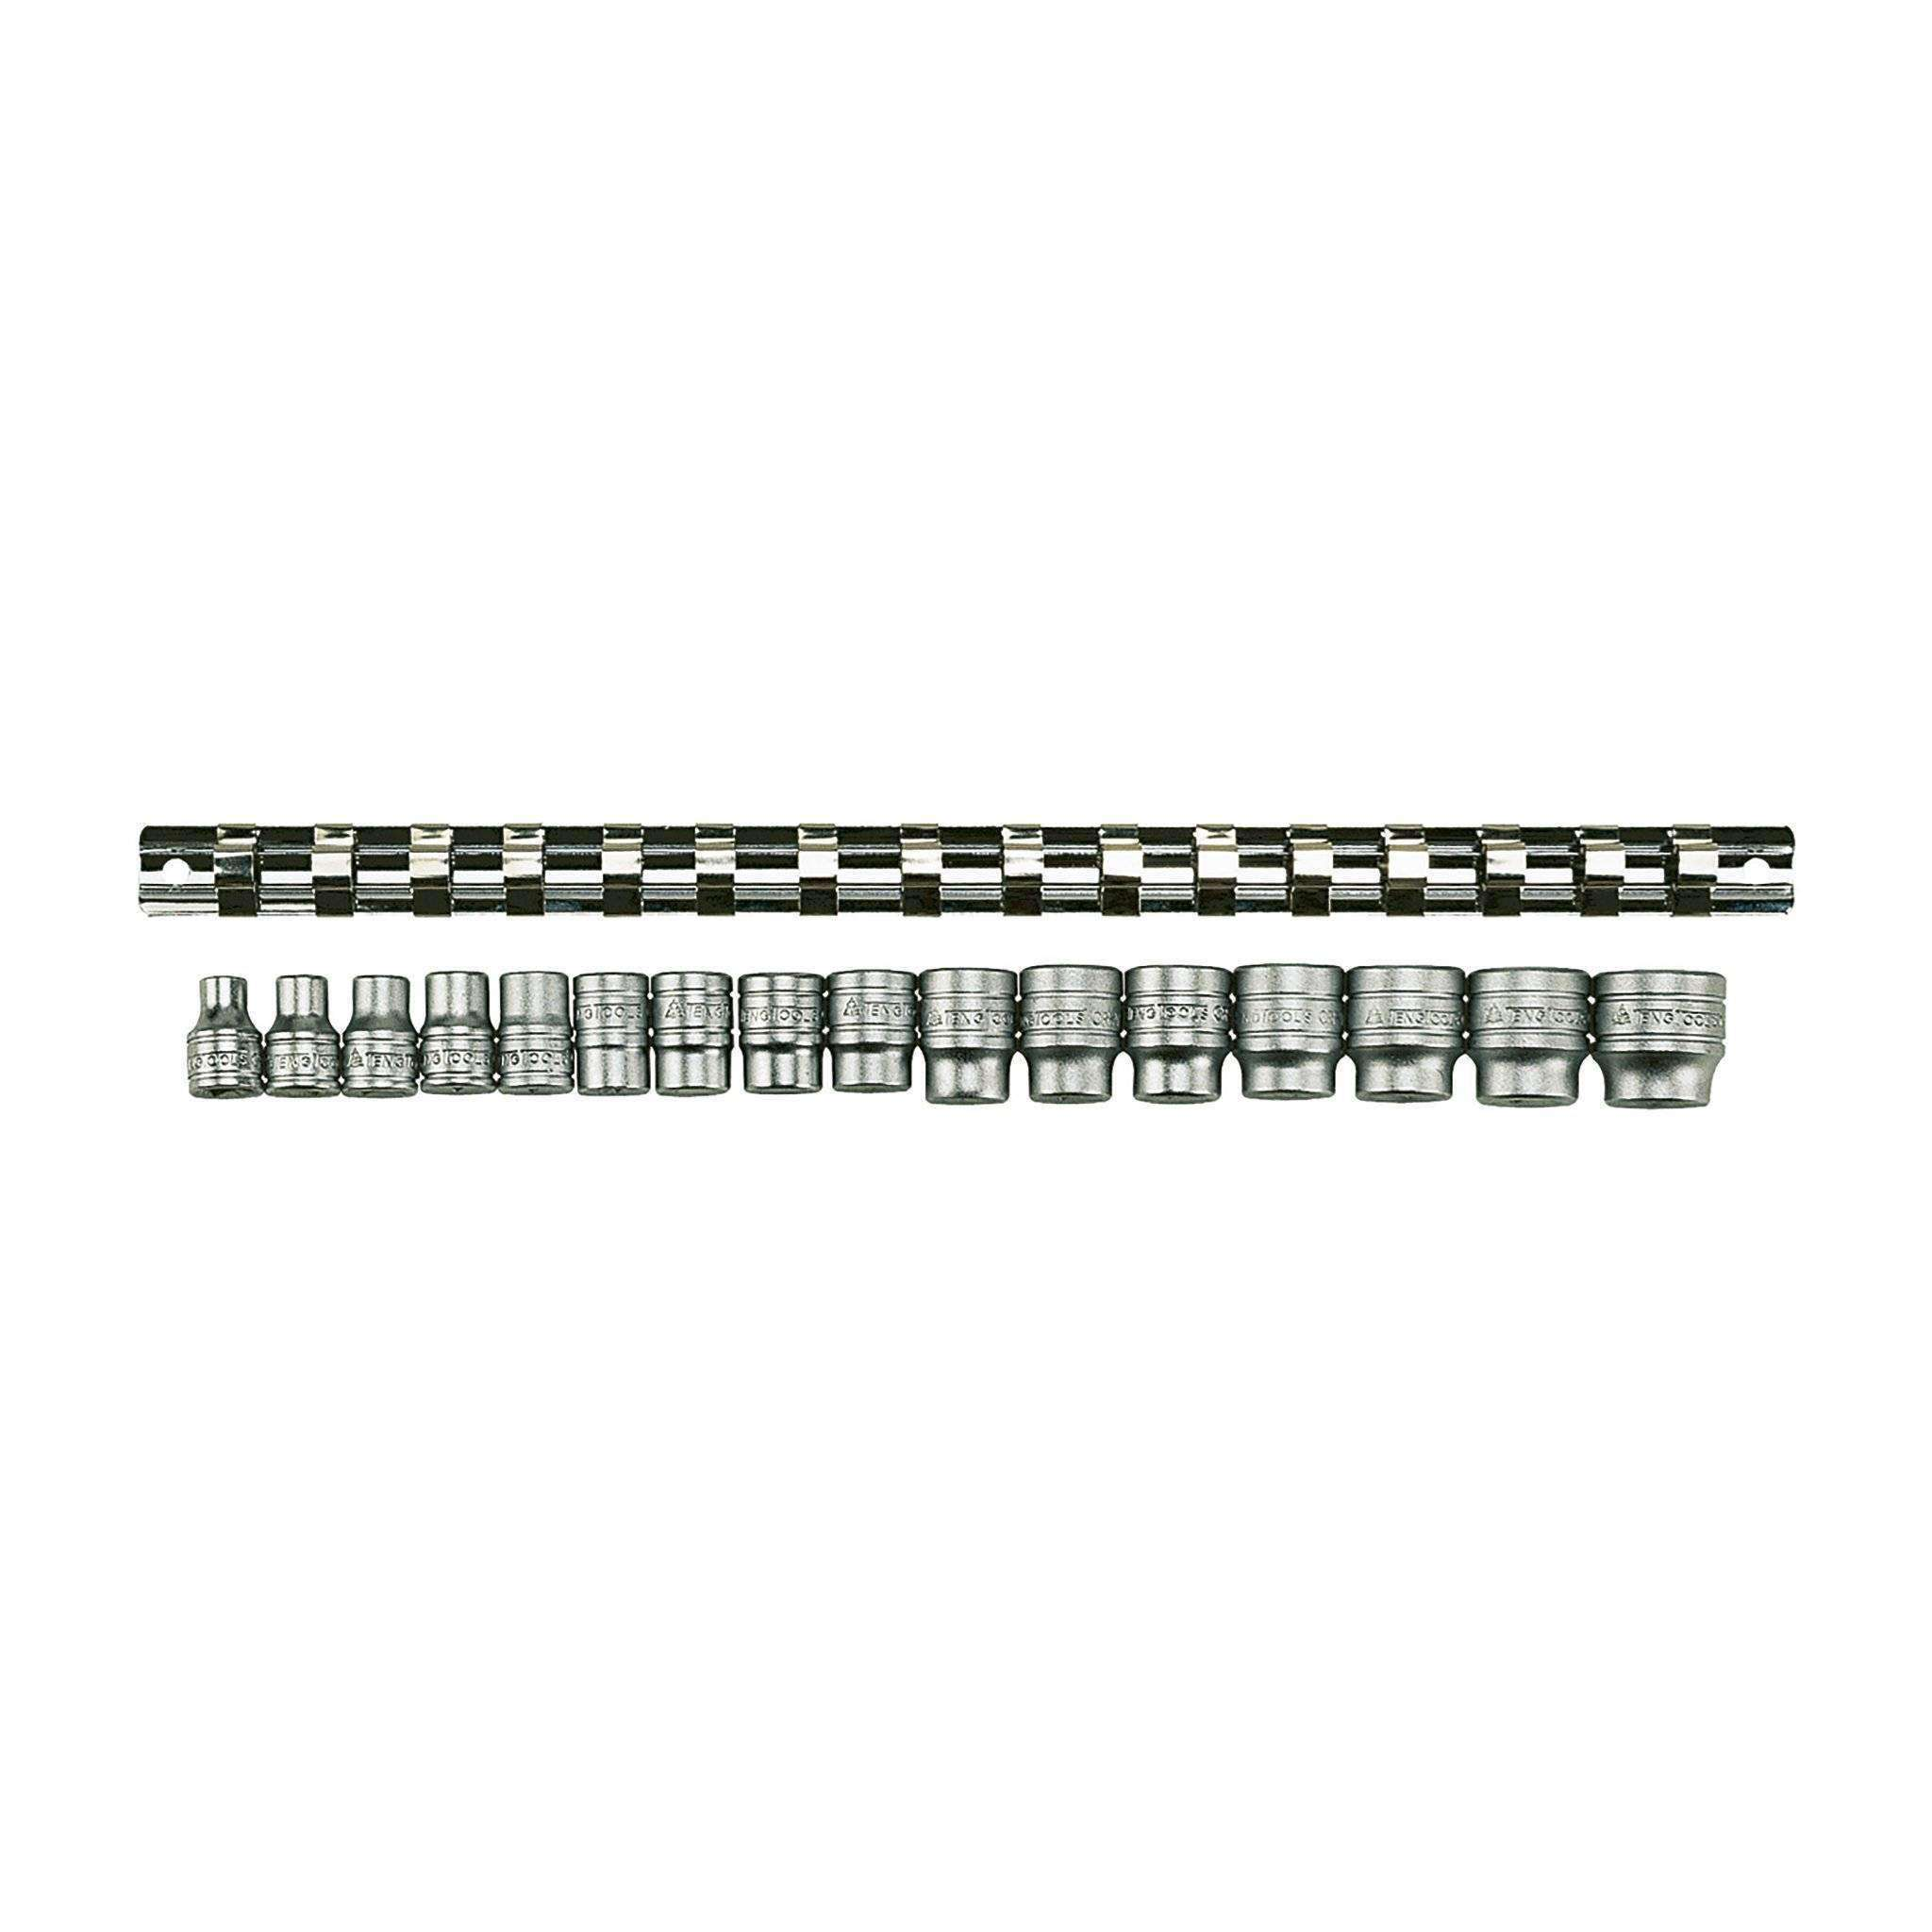 Teng Tools - 16 Piece 3/8 inch Drive Regular 6 Point Socket Set Clip Rail - M3816 - Teng Tools USA